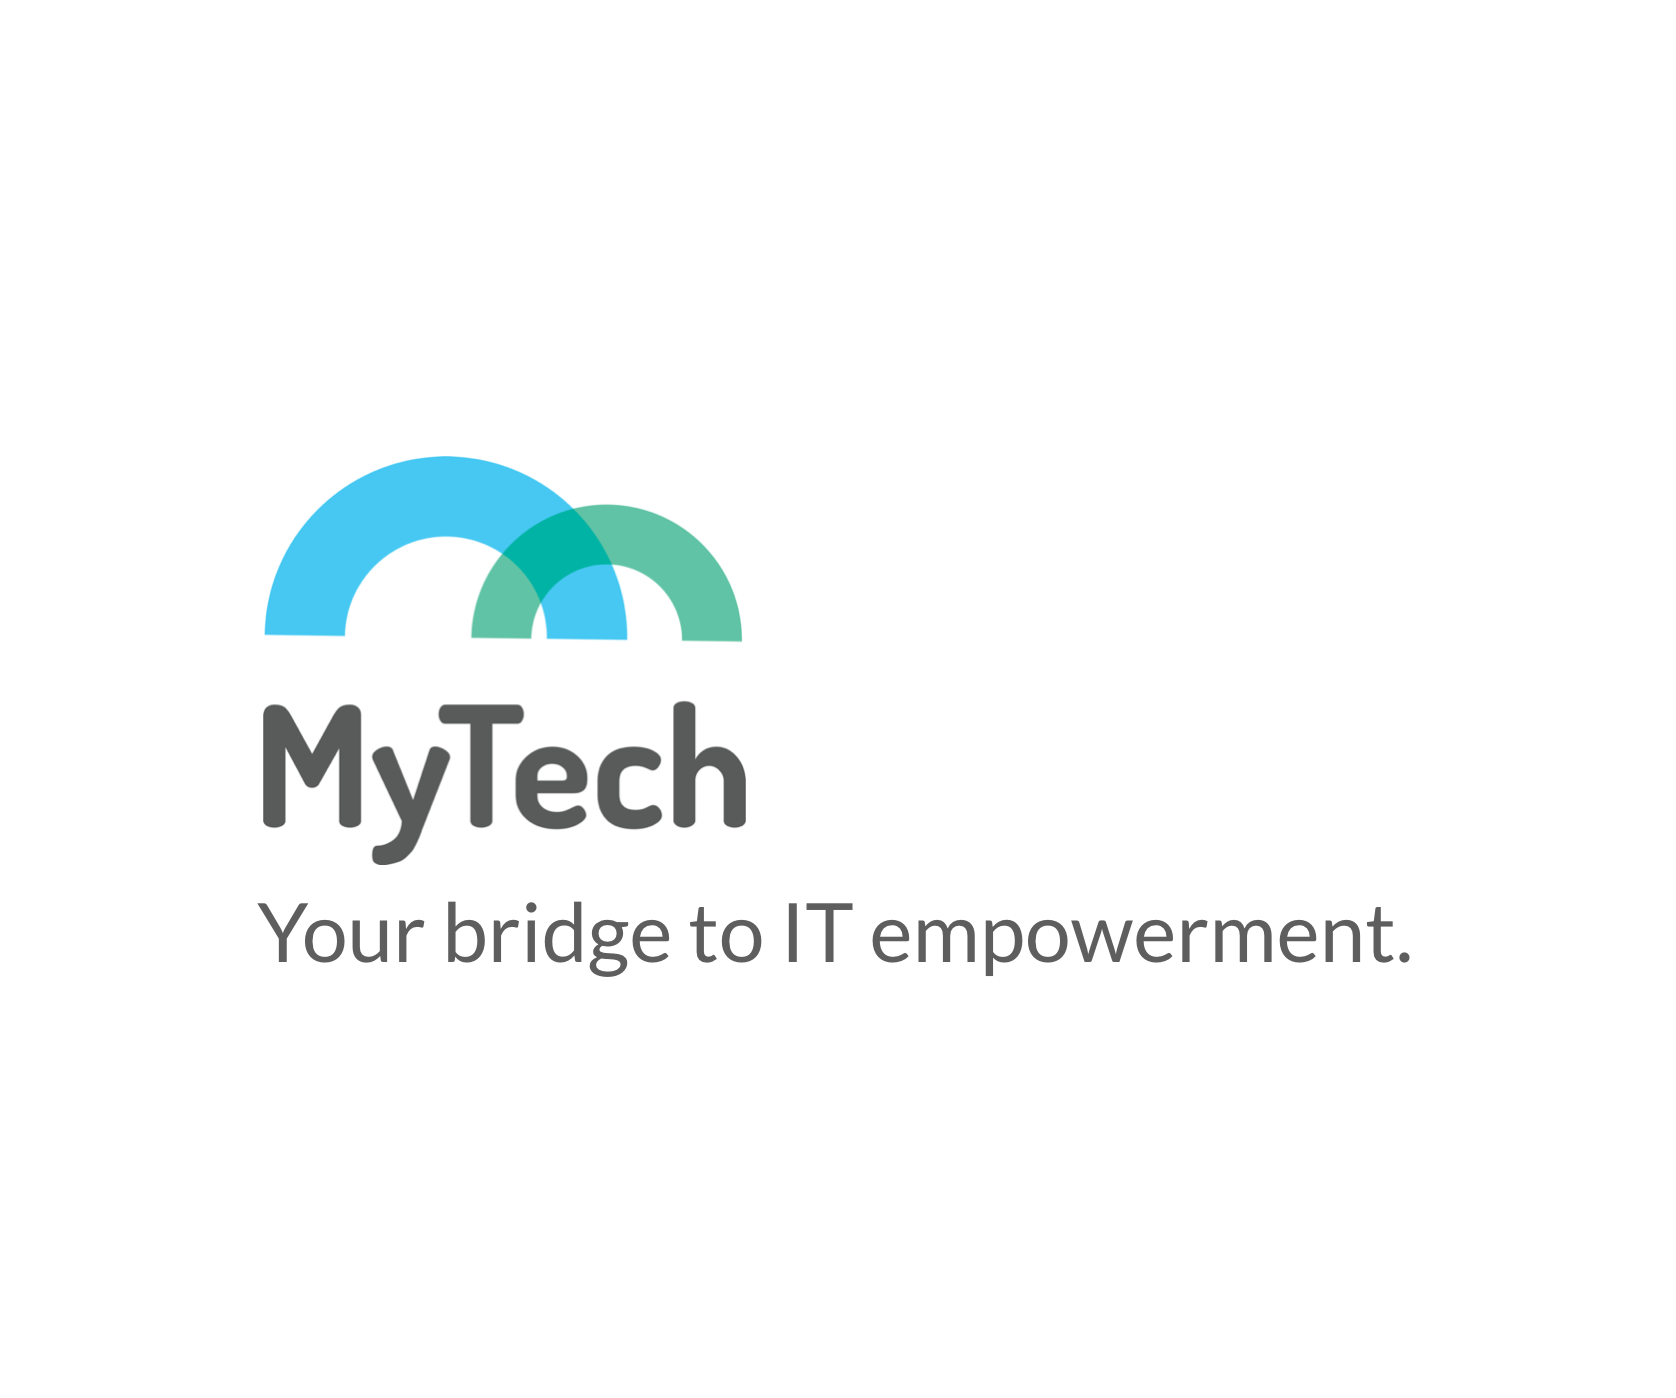 MyTech logo and tagline. Your bridge to IT empowerment.